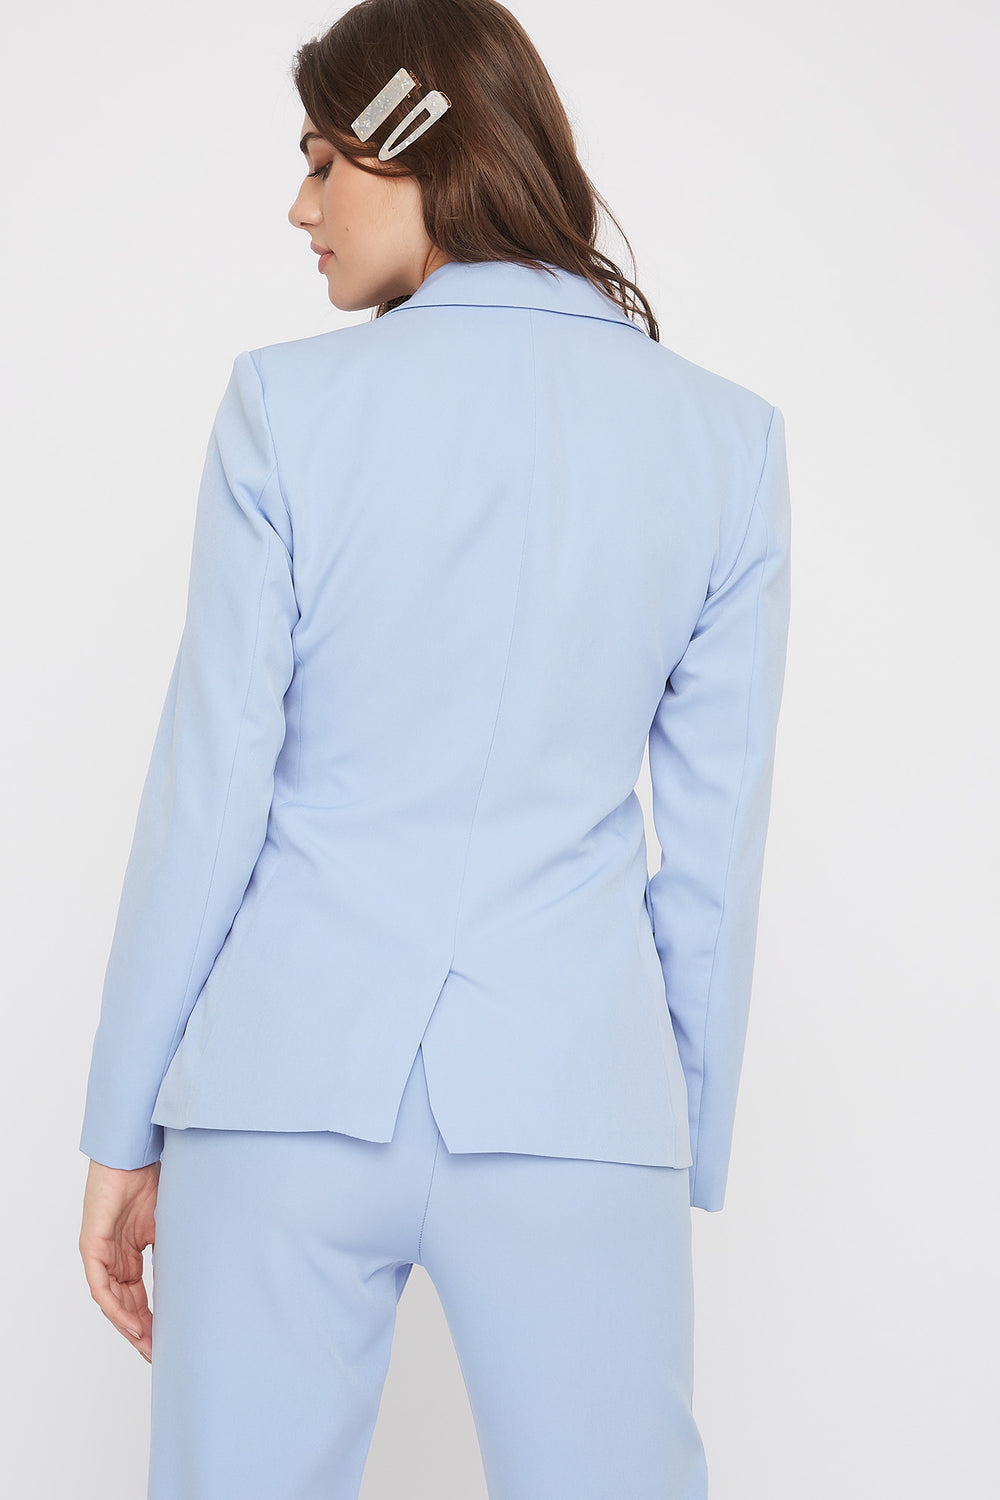 3-Button Single Breasted Blazer Light Blue